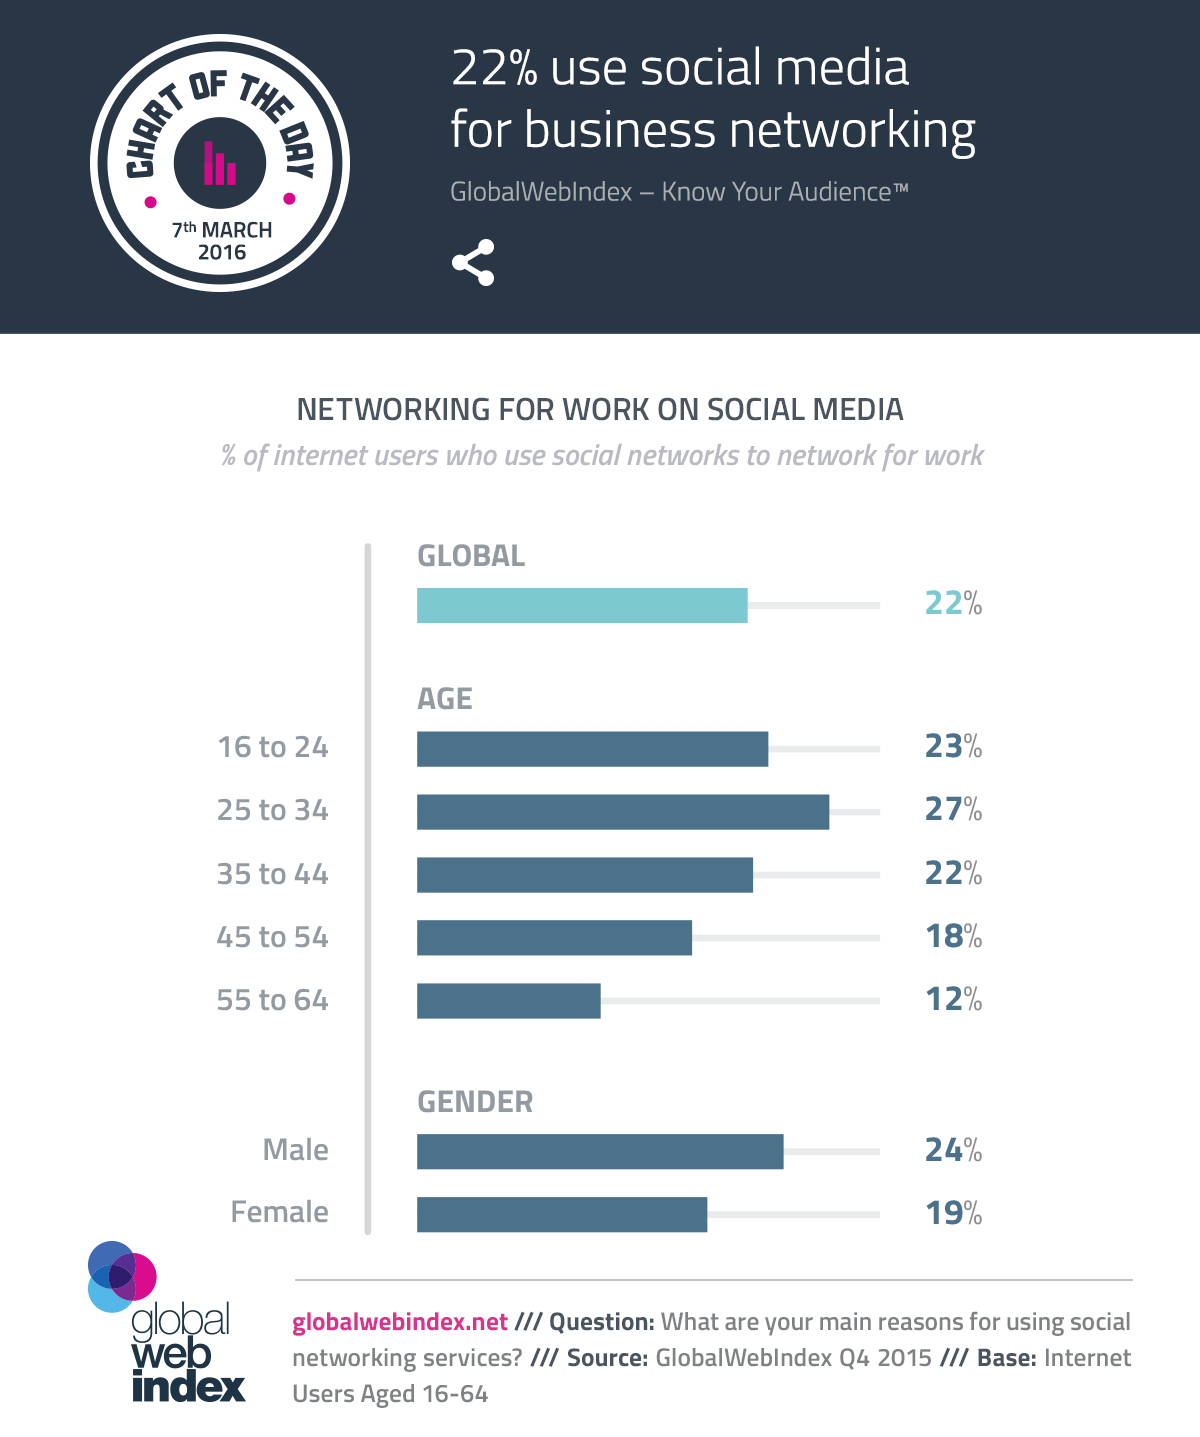 22-percent-use-social-media-for-business-networking-.png